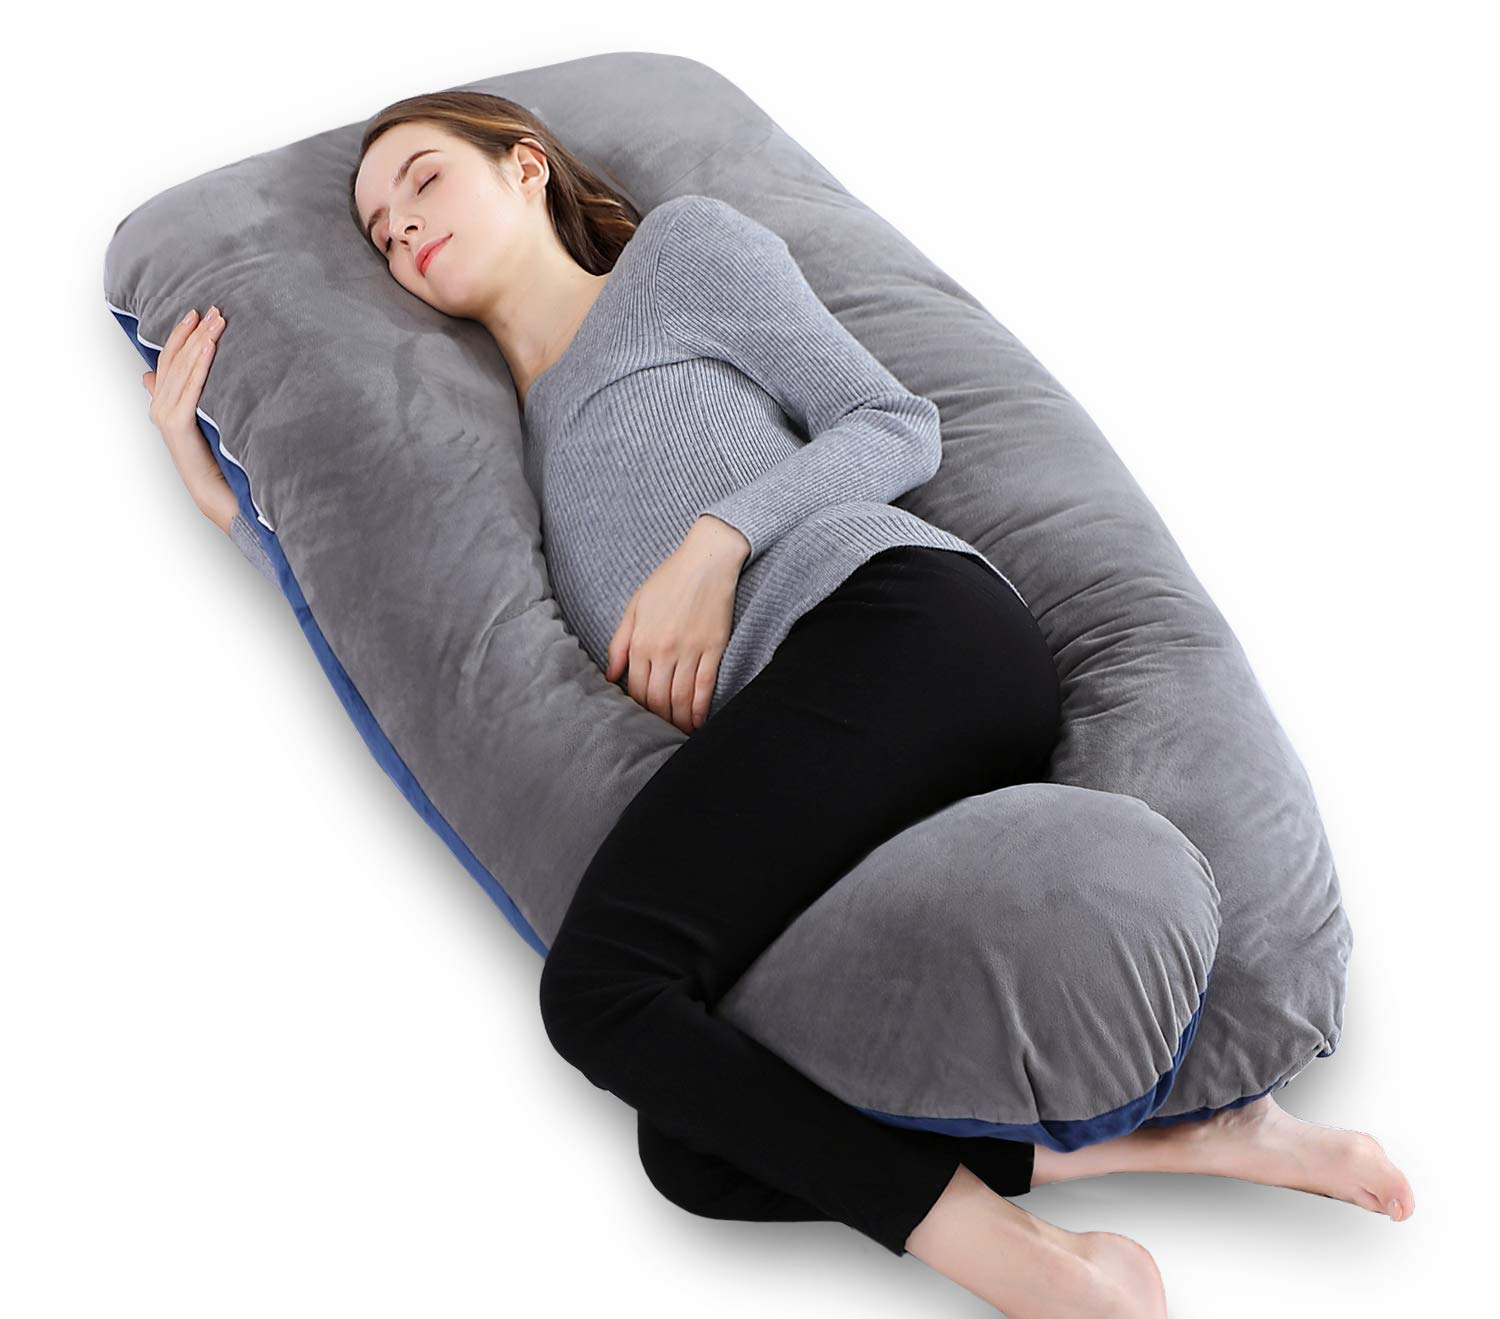 INSEN U Shaped Pregnancy Pillow,Full Body Maternity Pillow with Zipper Velvet Cover